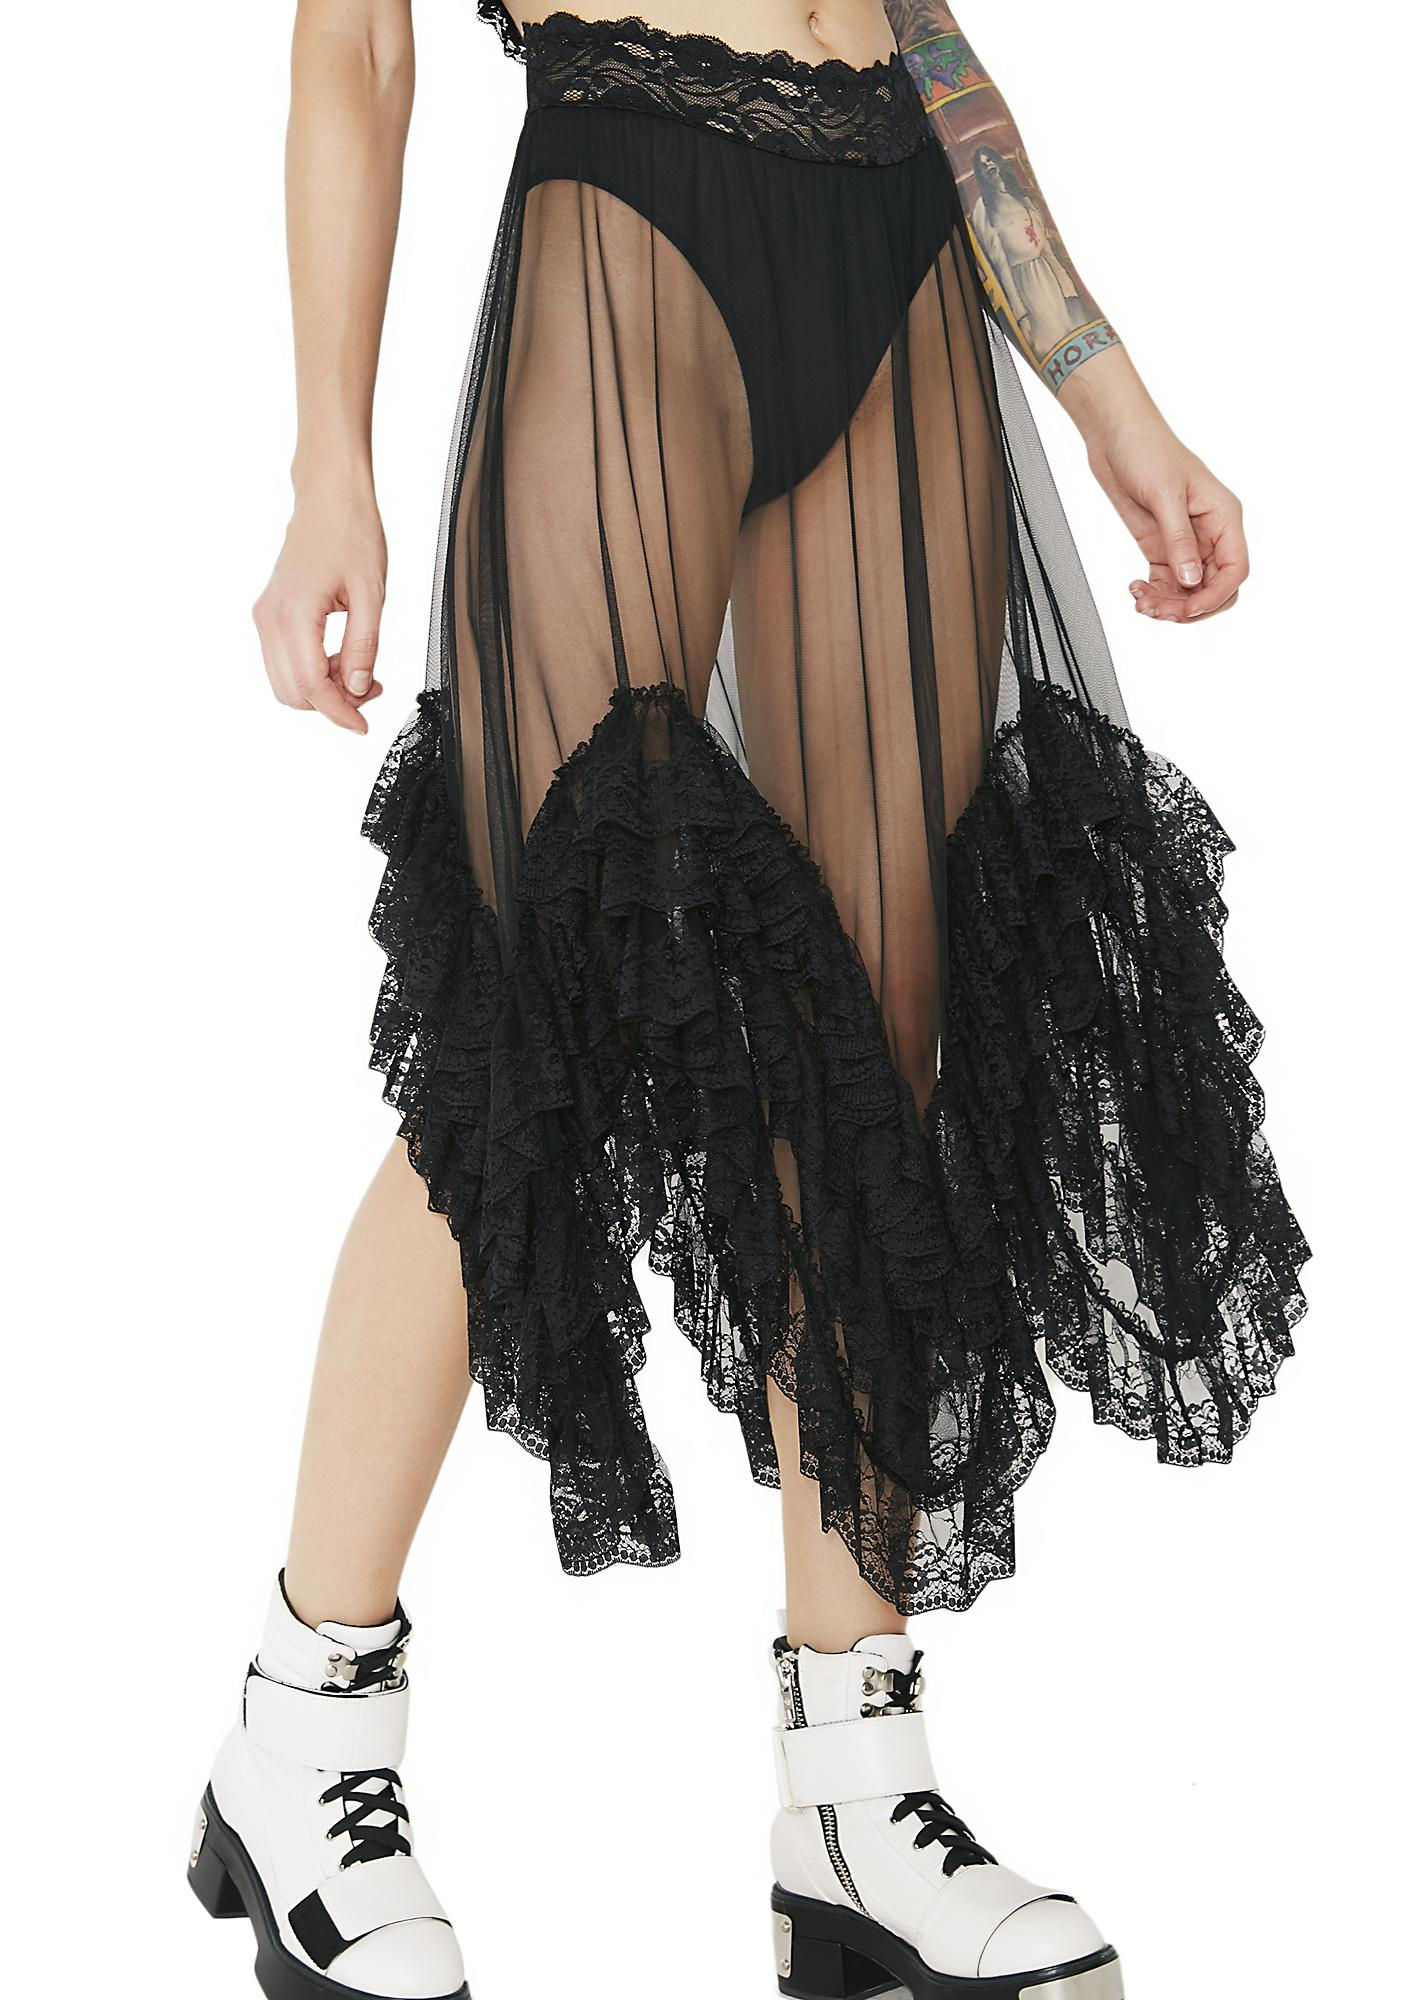 Current Mood Midnight Clementine Sheer Ruffled Skirt